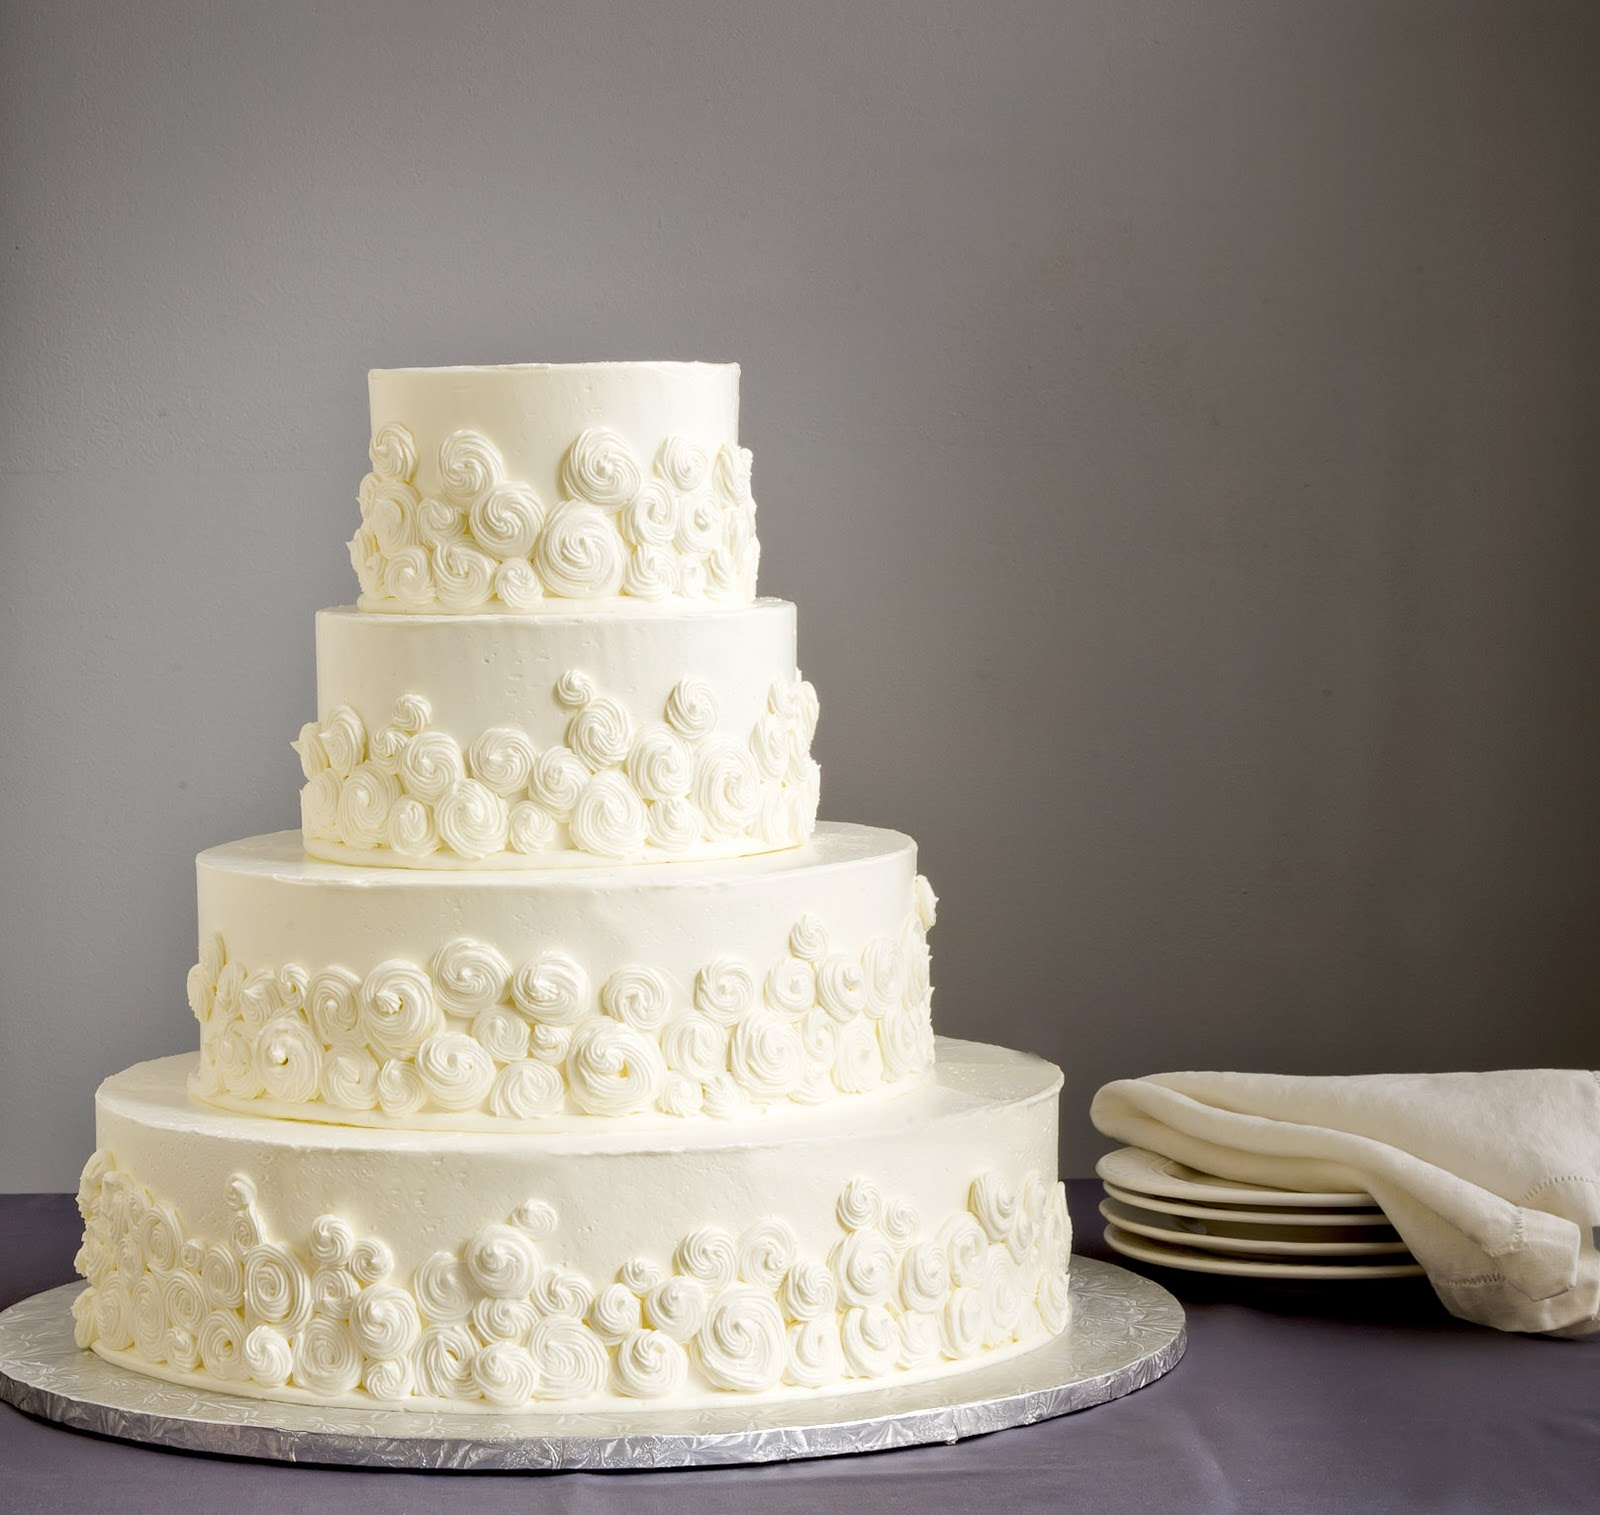 Cake Designs And Images : A Simple Cake: THREE NEW Wedding Cake Ideas